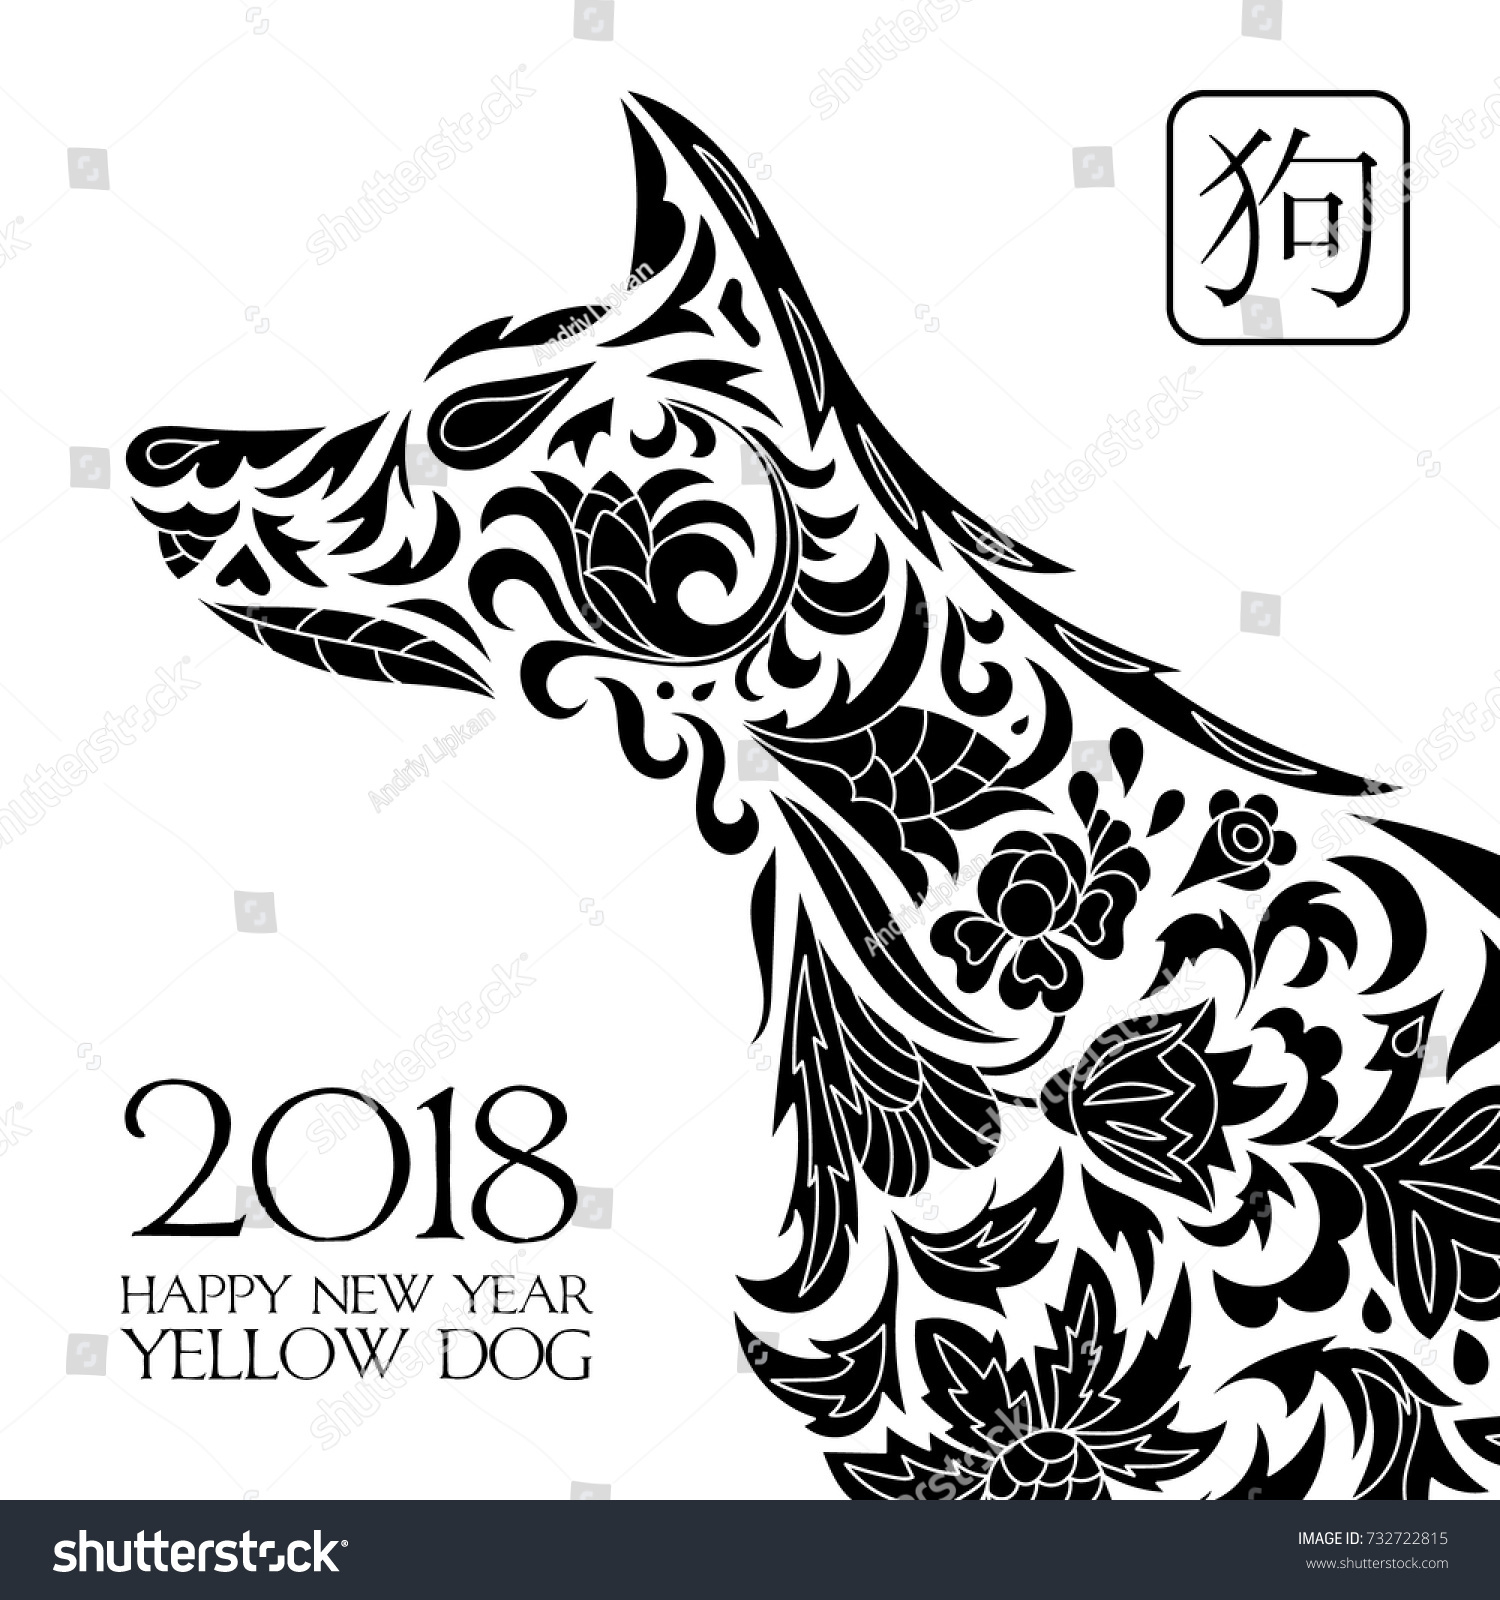 2018 Greeting Chinese New Year Card Stock Photo (Photo, Vector ...